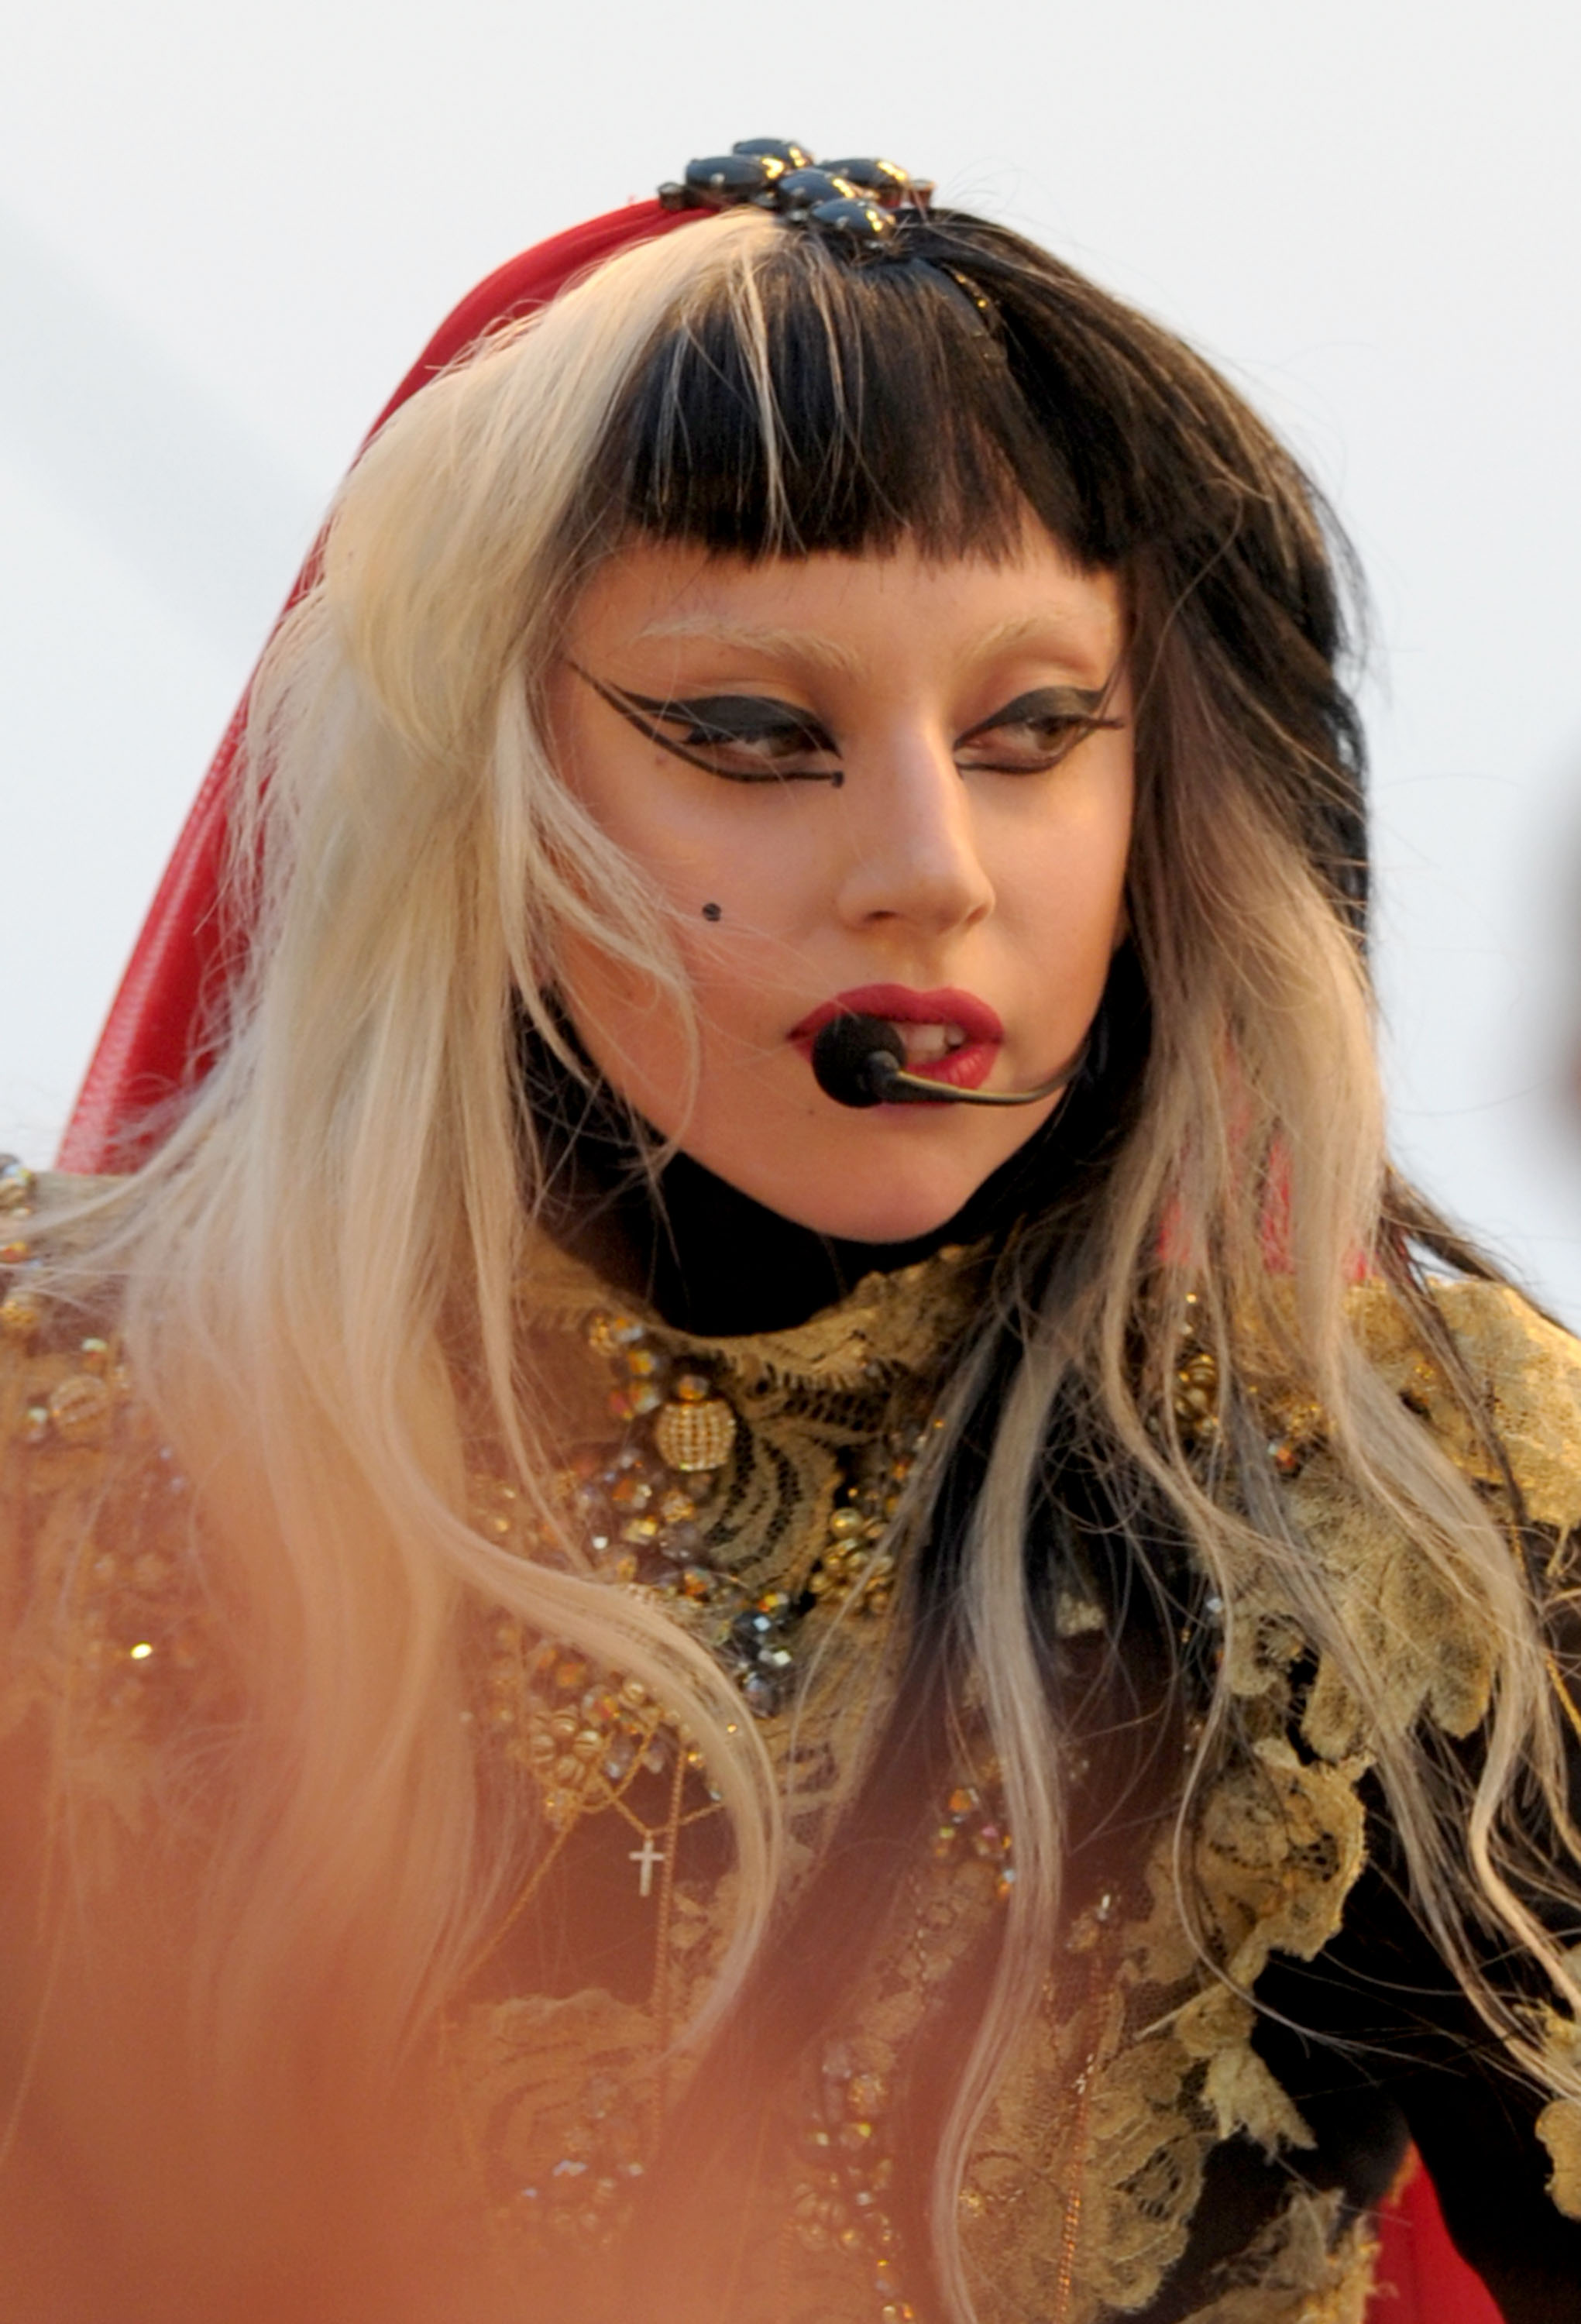 Lady gaga from la foto del momento